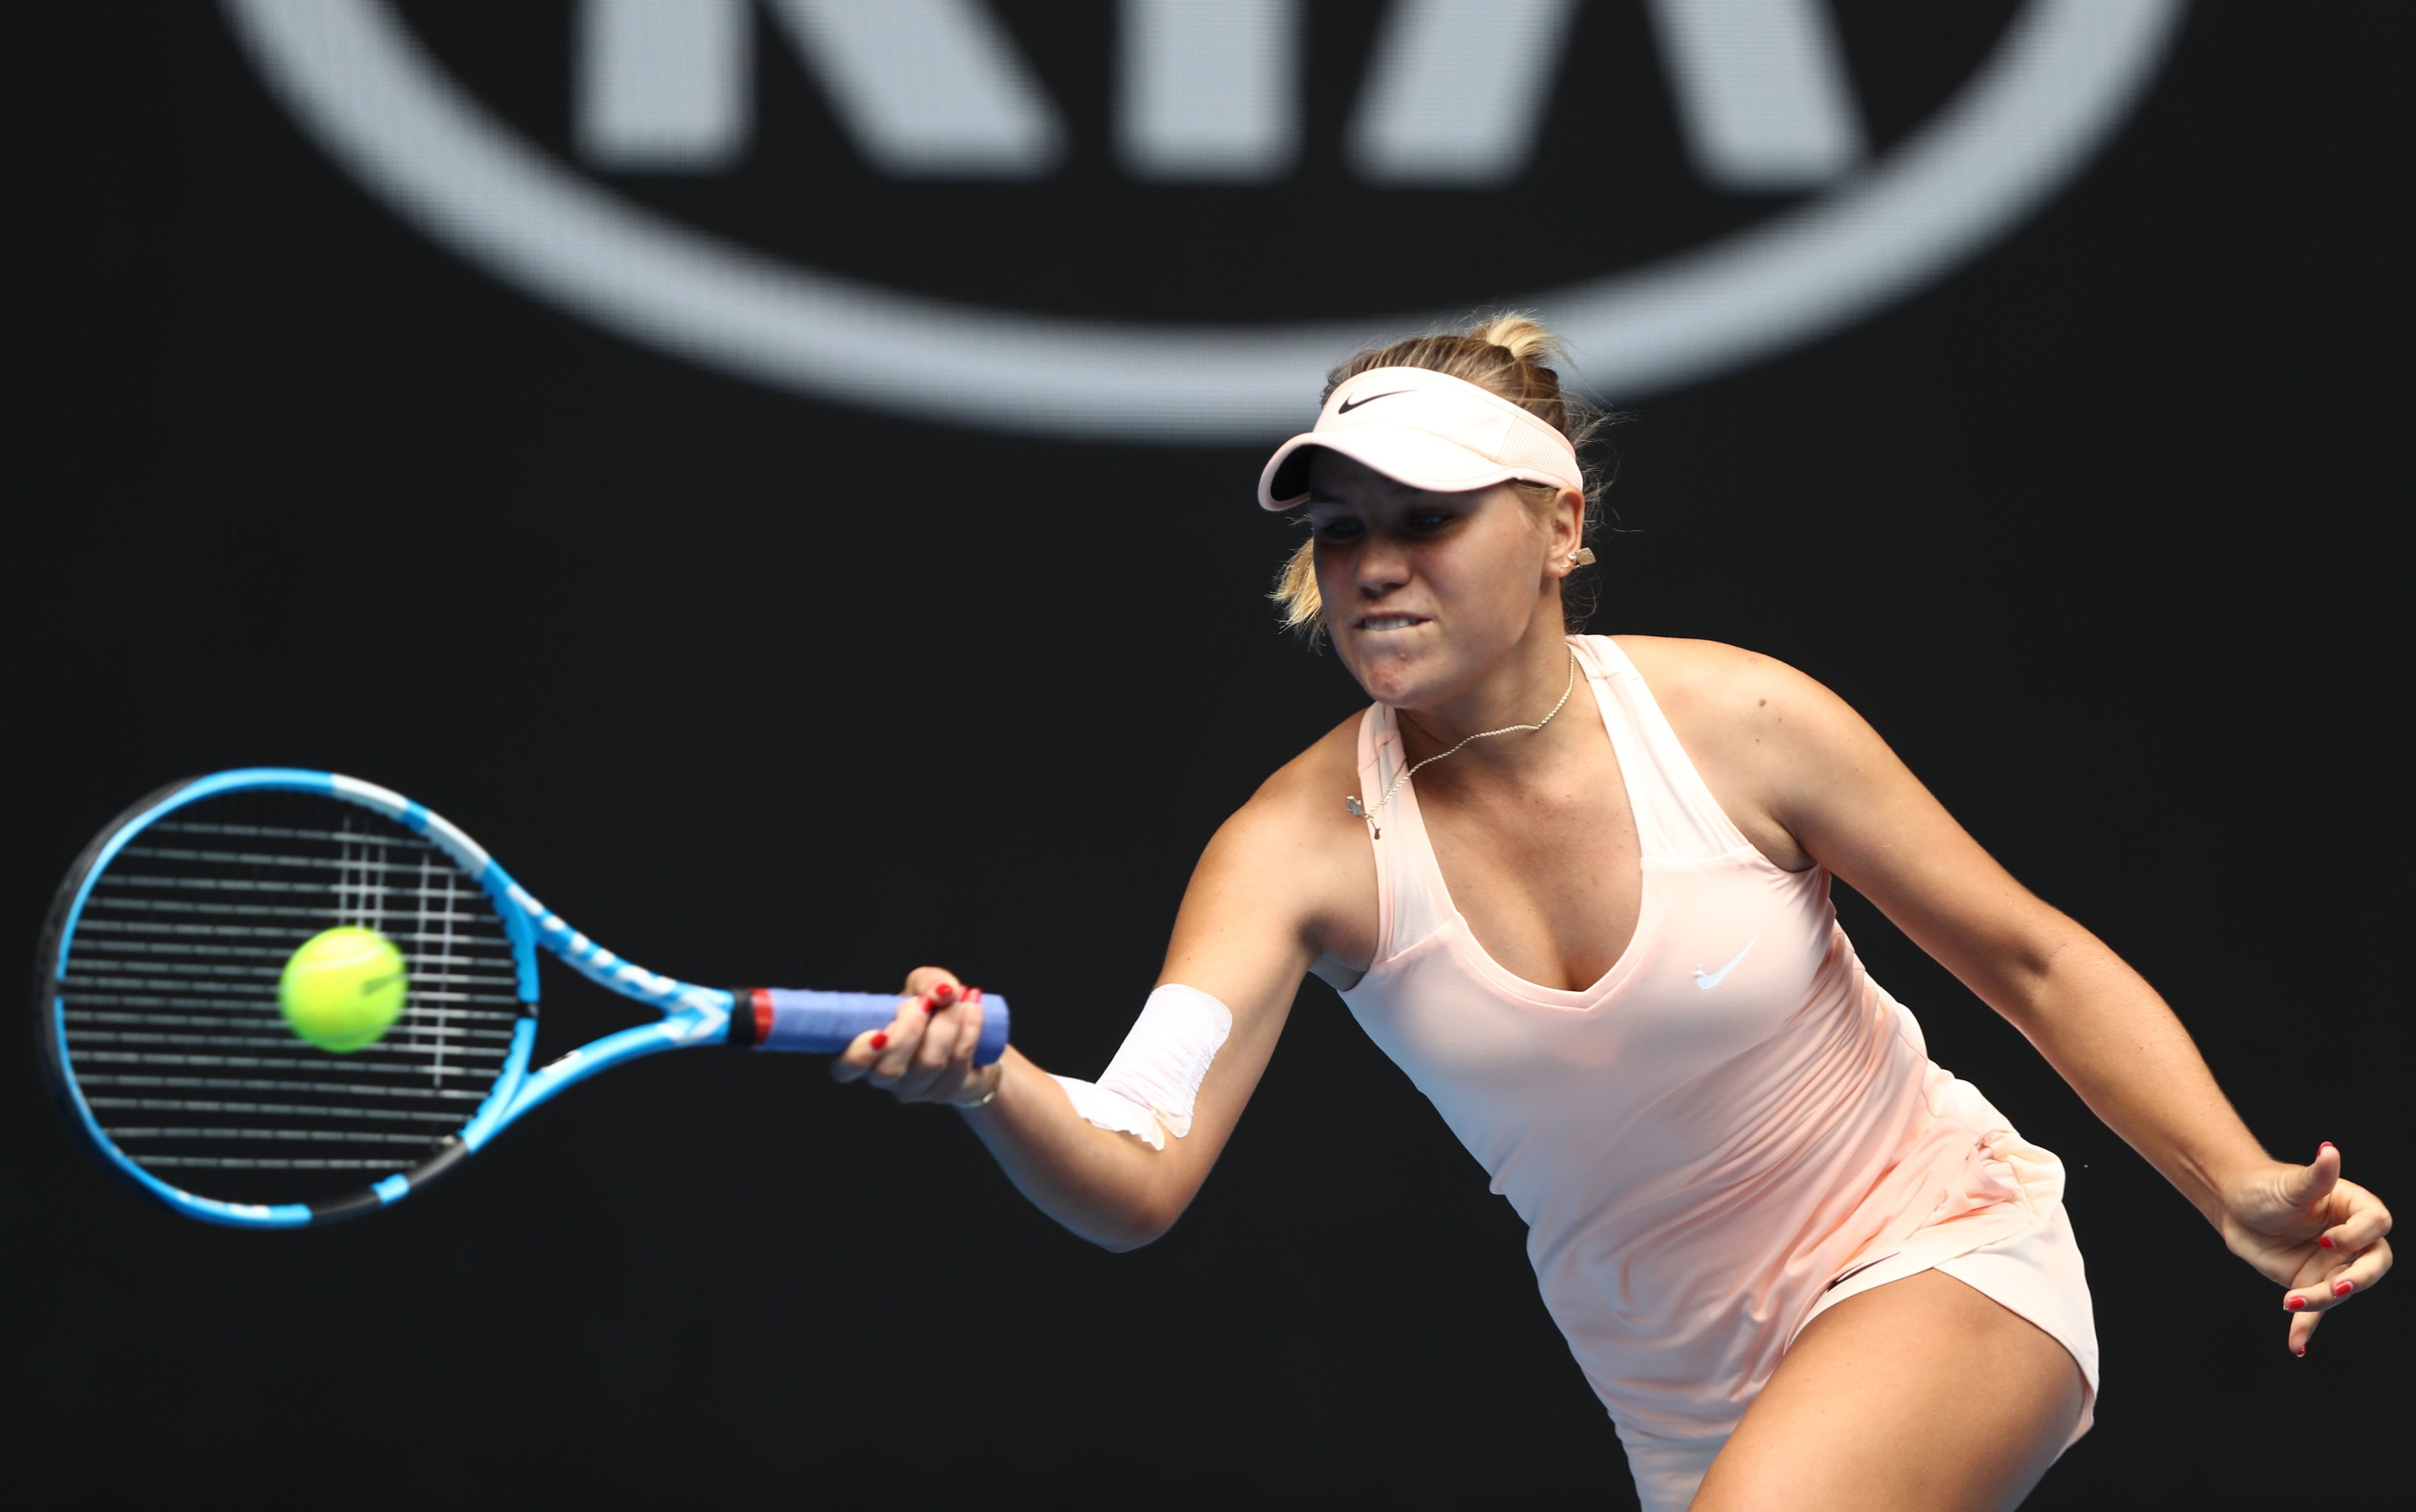 Sofia Kenin Young American Tennis Player Rising On The Wta Tour